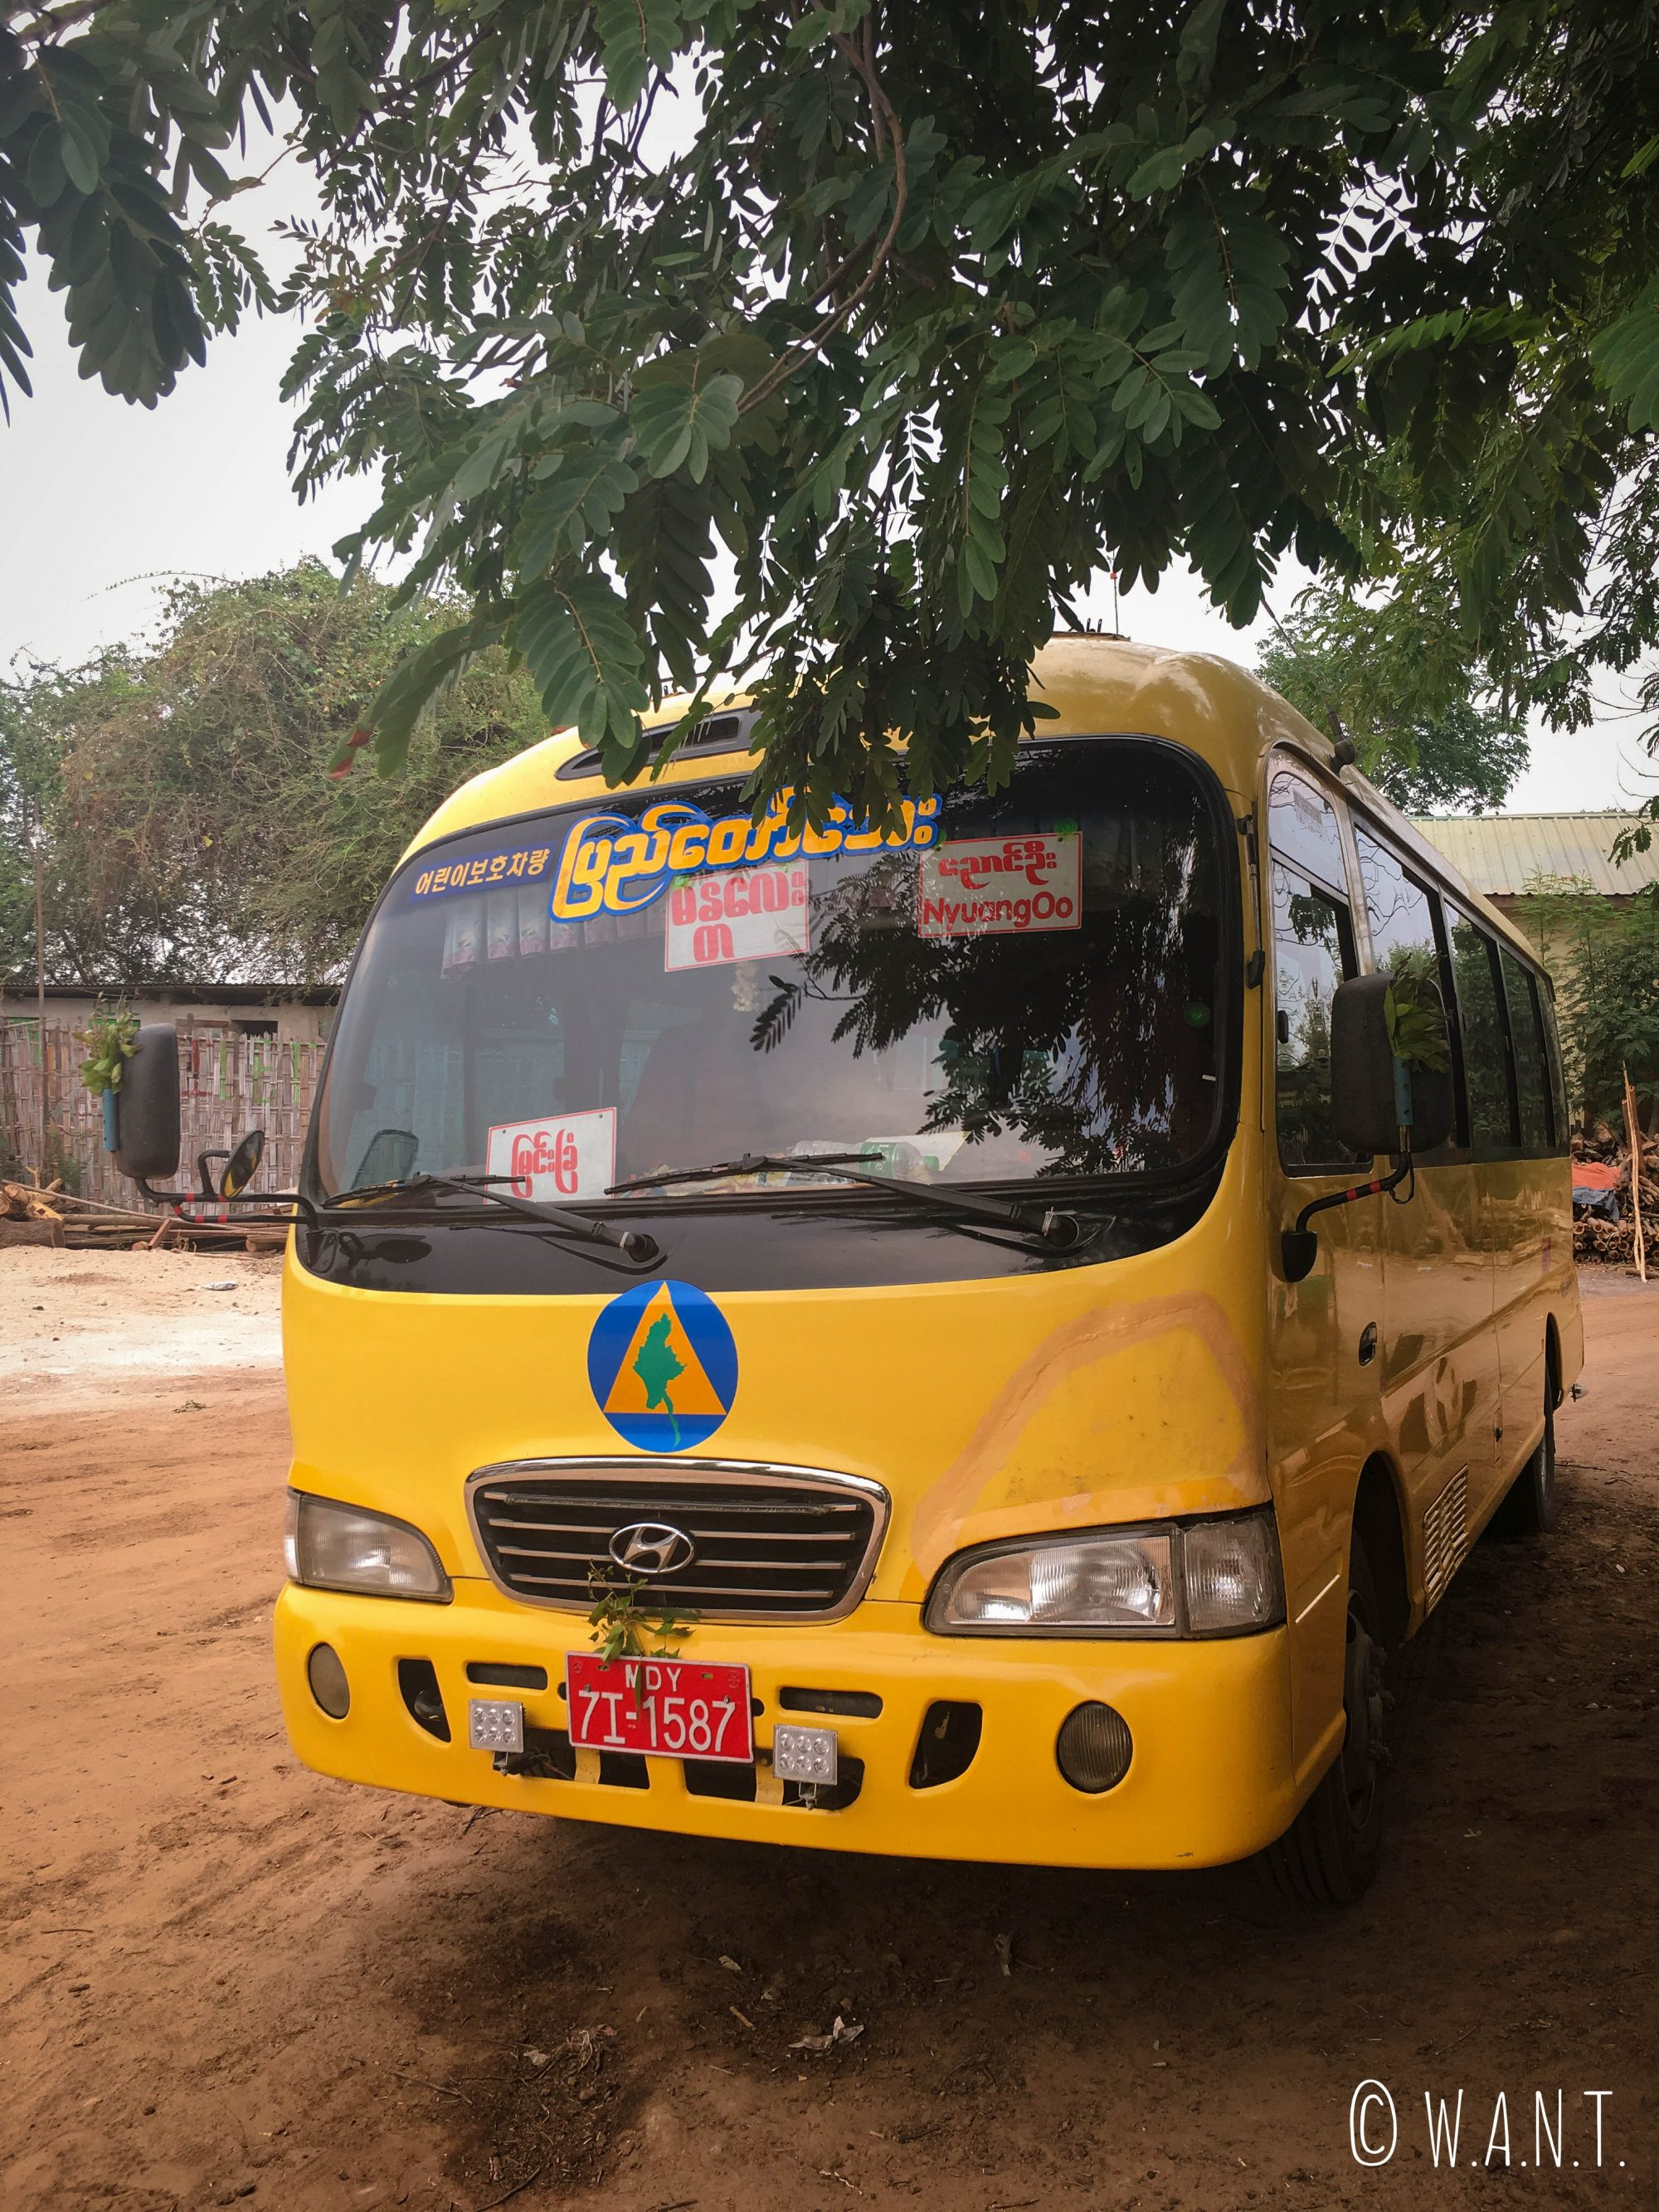 Le bus nous transportant de Mandalay à Bagan